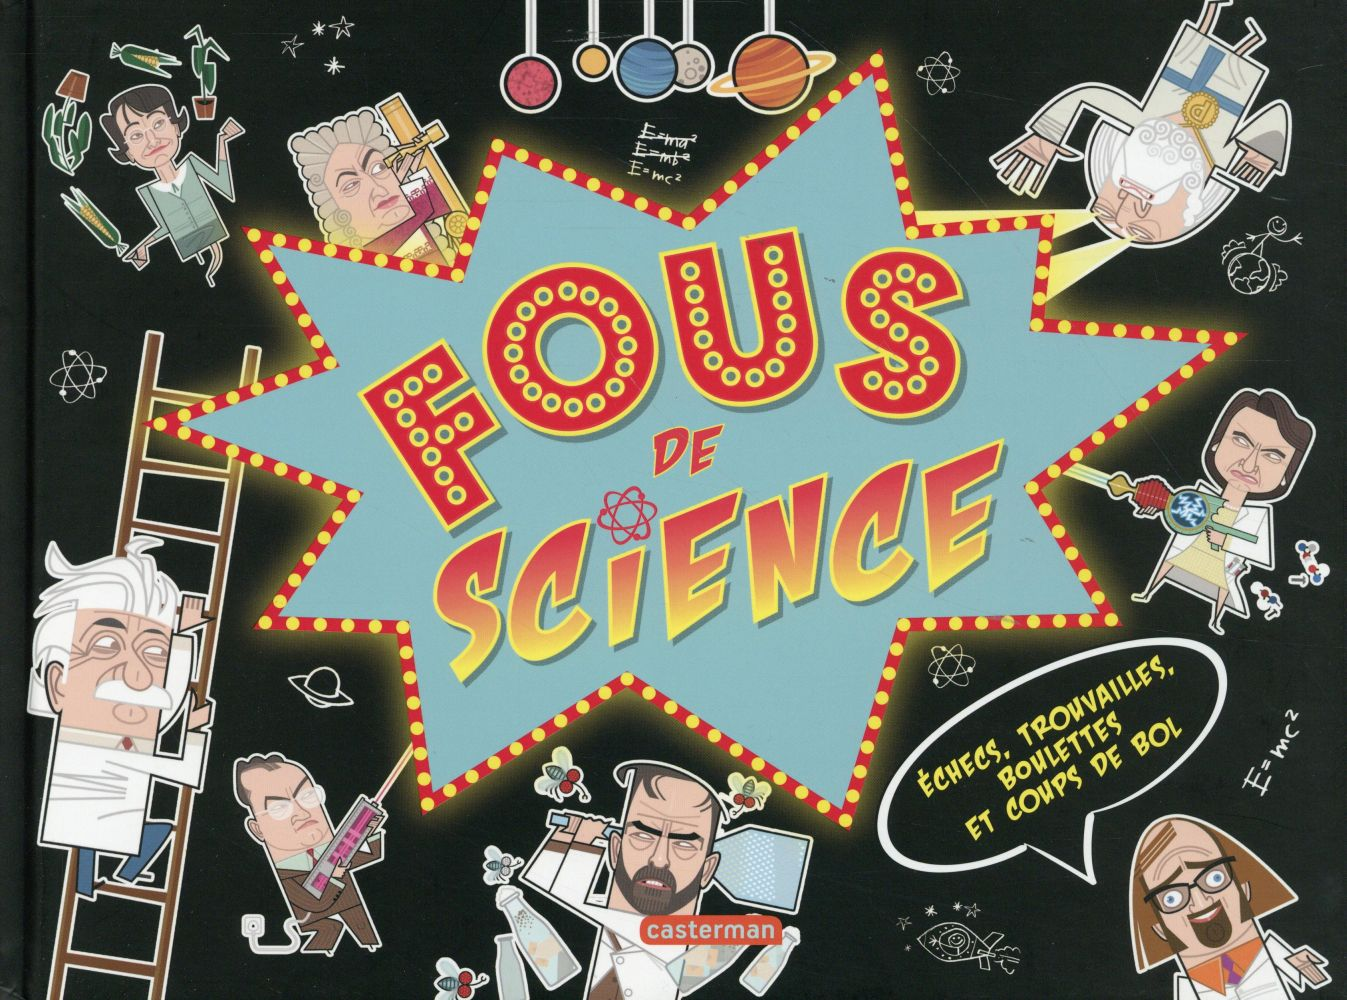 Fous de science